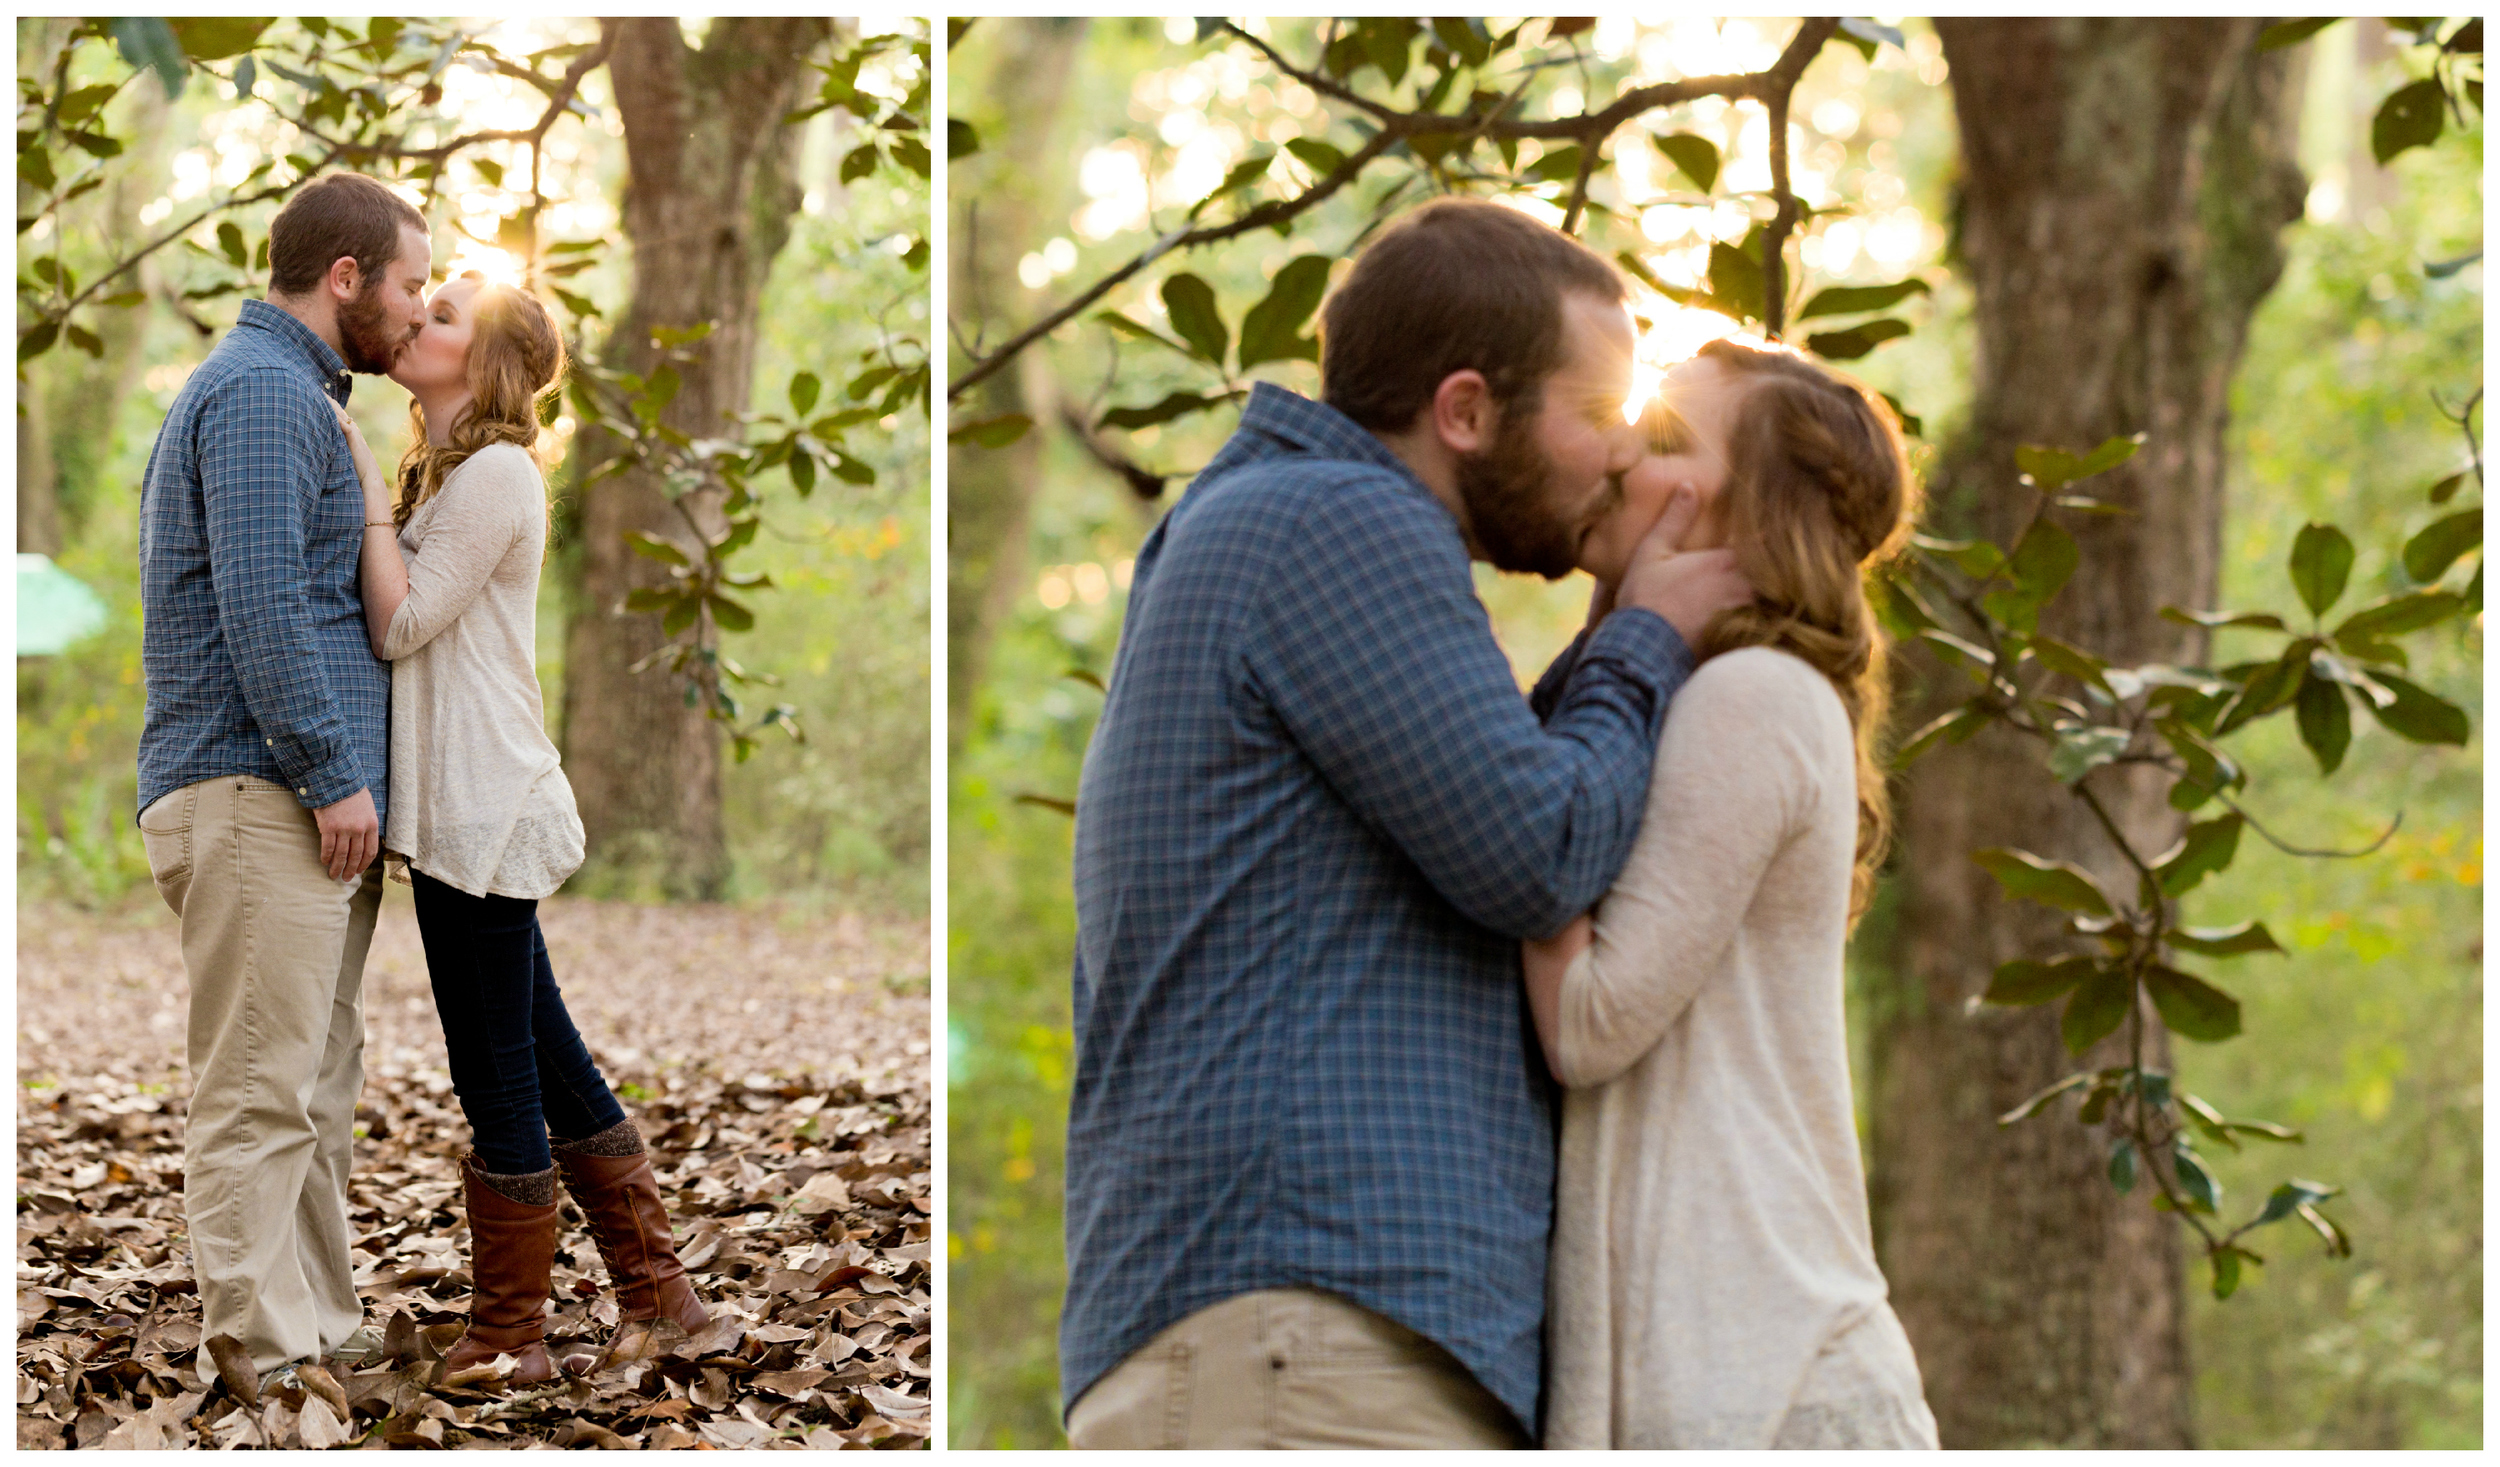 kissing engagement photo with sun flare (Ocean Springs nature)